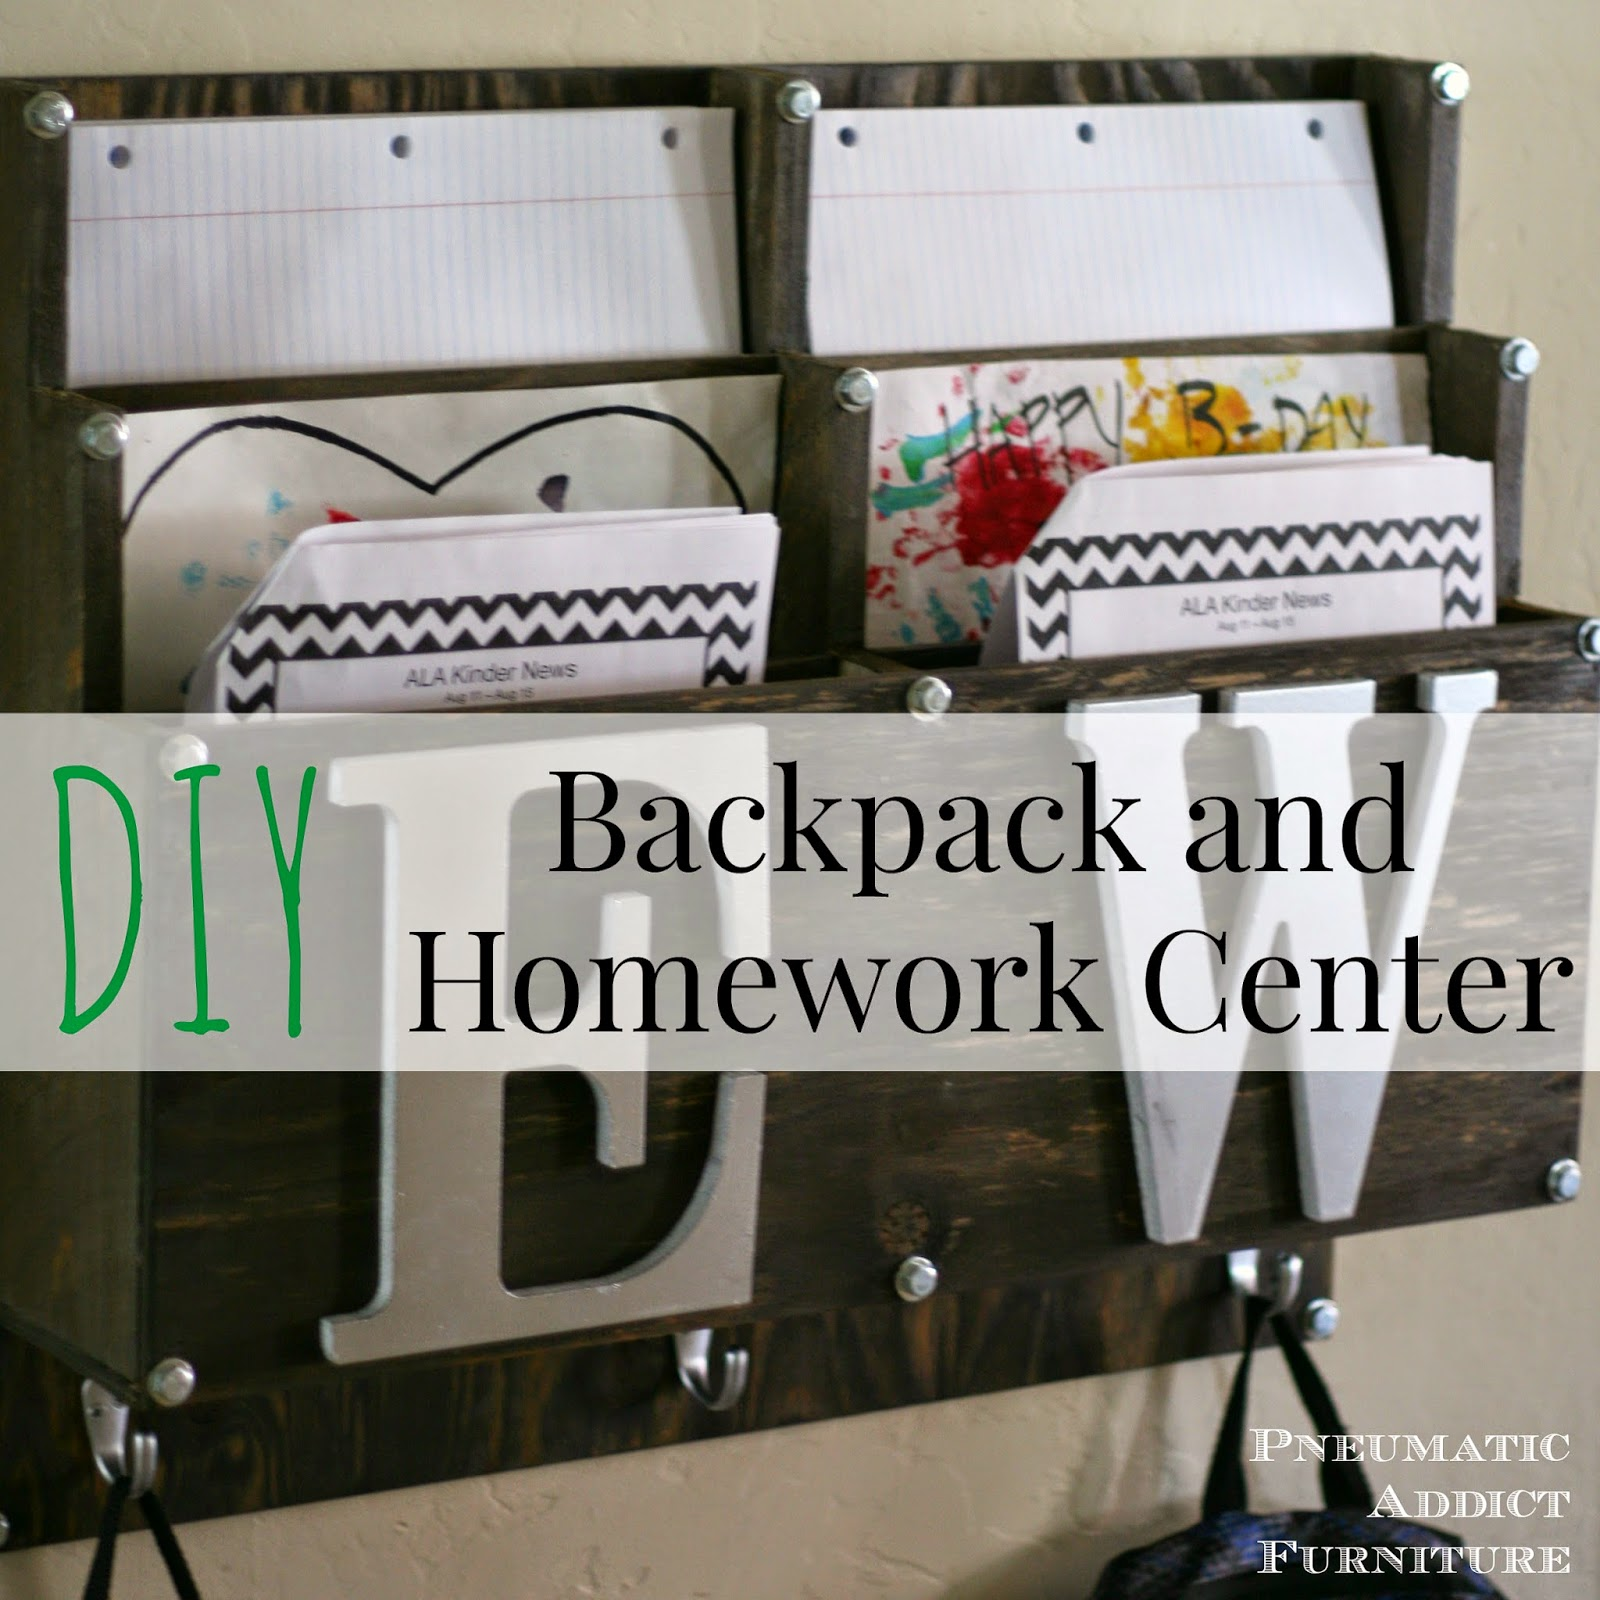 DIY Backpack and Homework Center